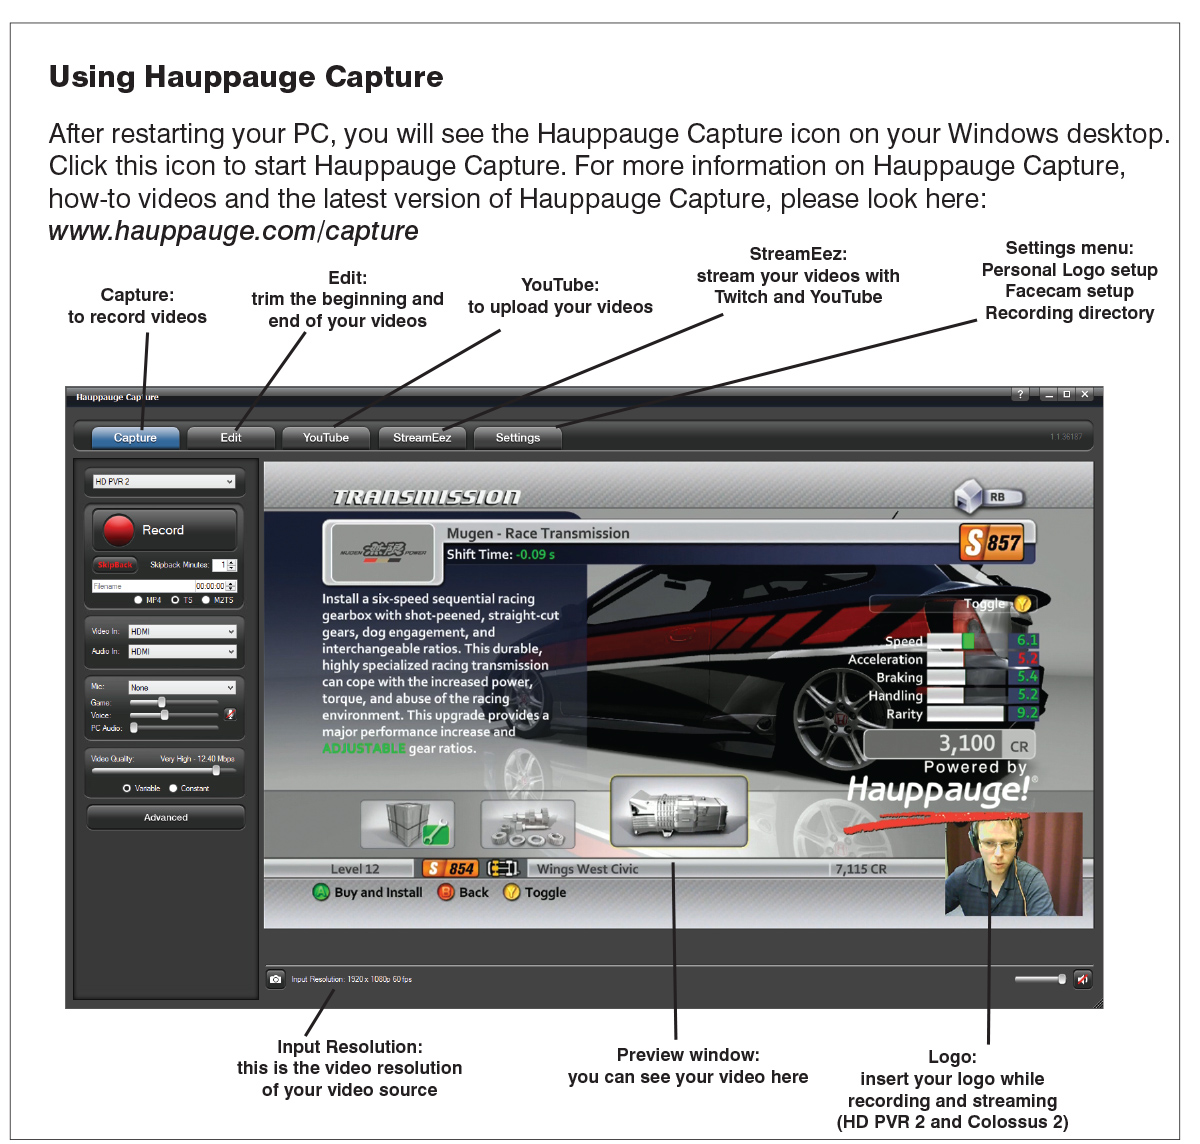 Hauppauge Capture